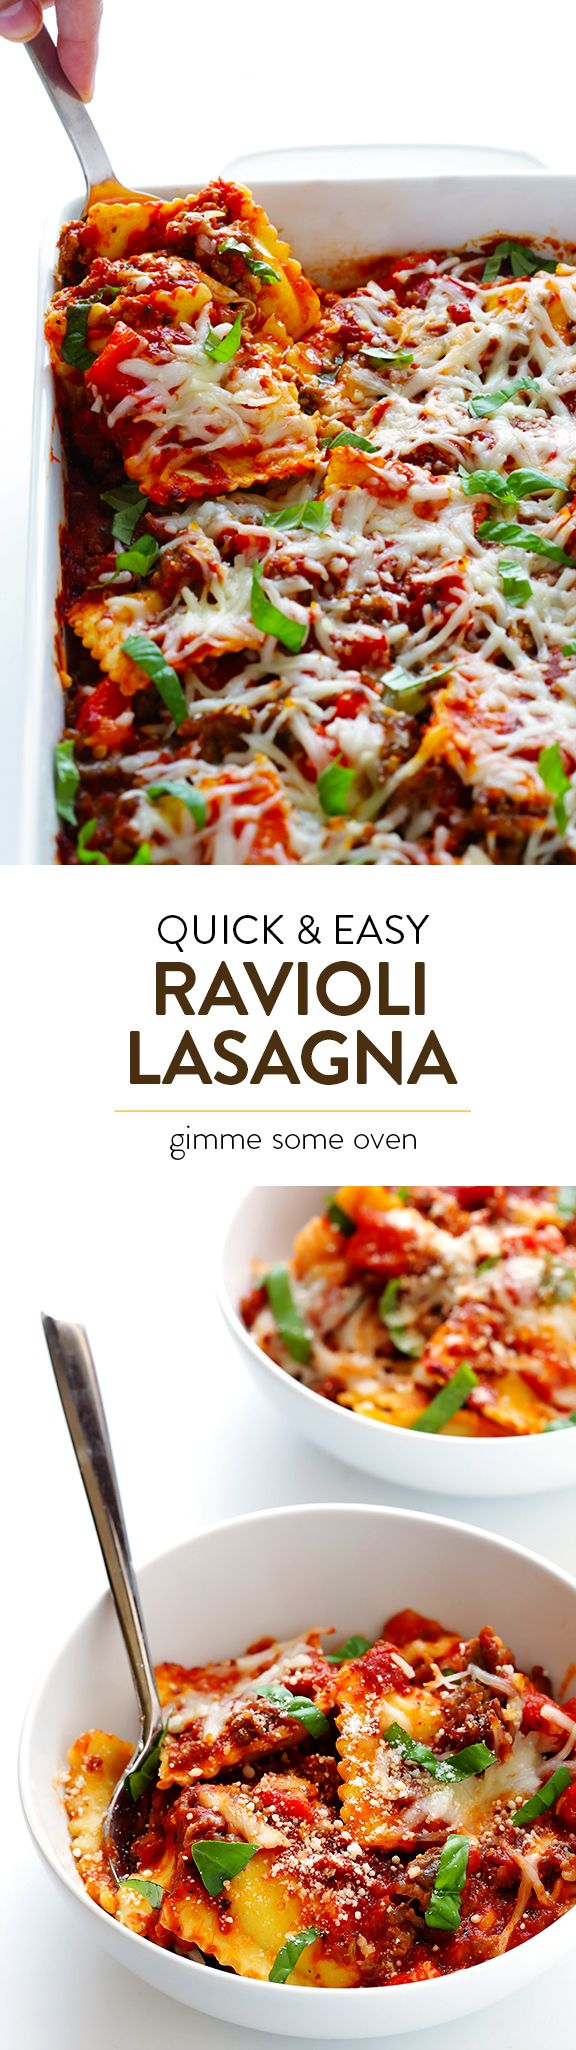 This ravioli lasagna recipe is super easy to make, and it's always a crowd-pleaser! | gimmesomeoven.com